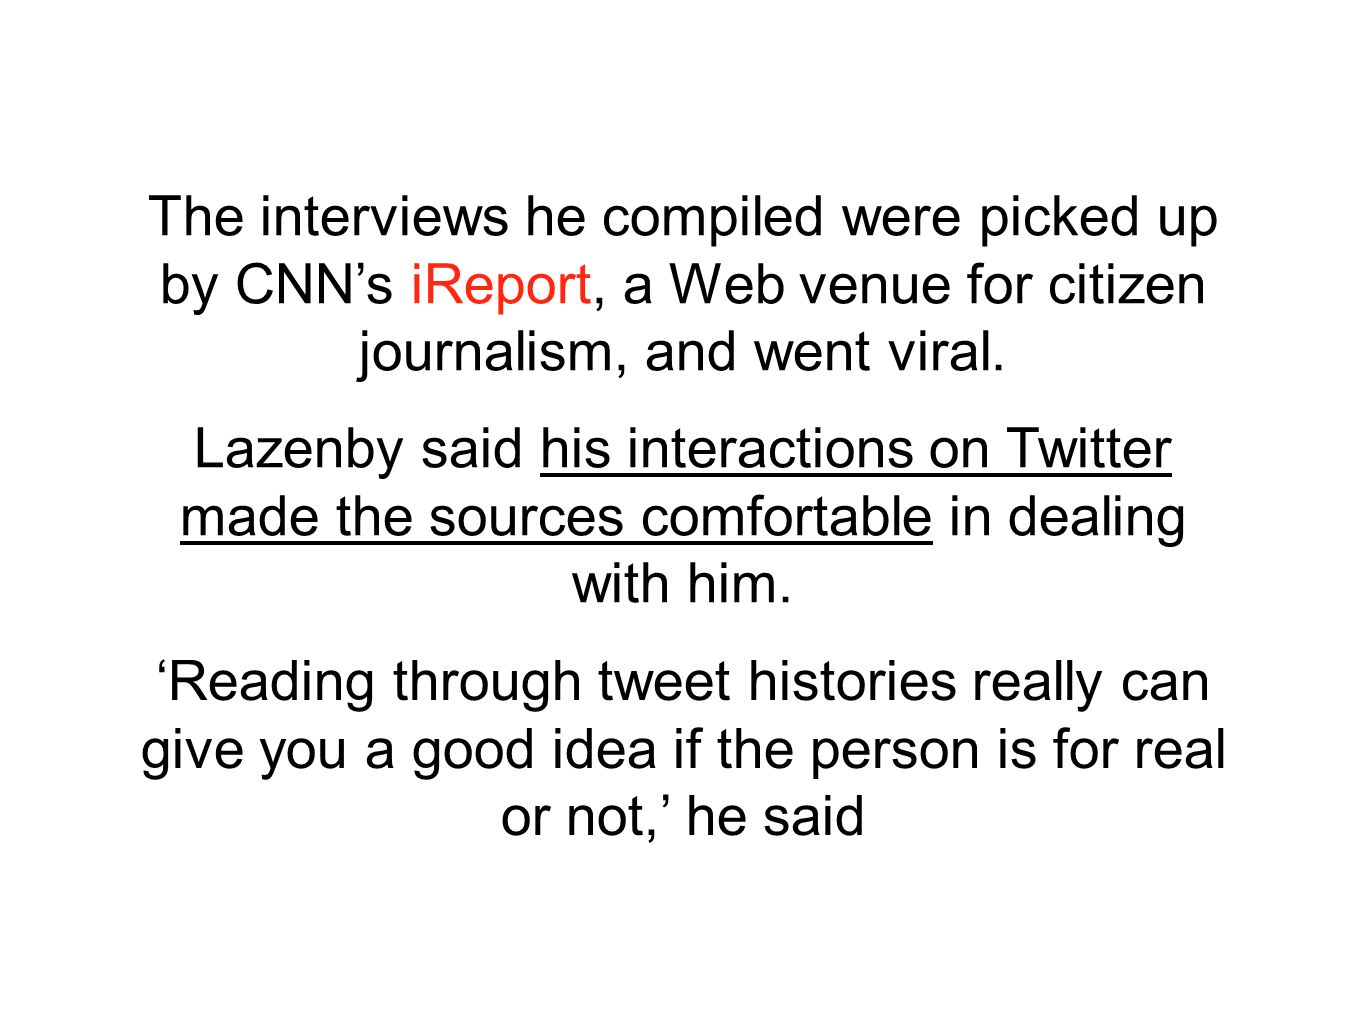 The interviews he compiled were picked up by CNN's iReport, a Web venue for citizen journalism, and went viral.